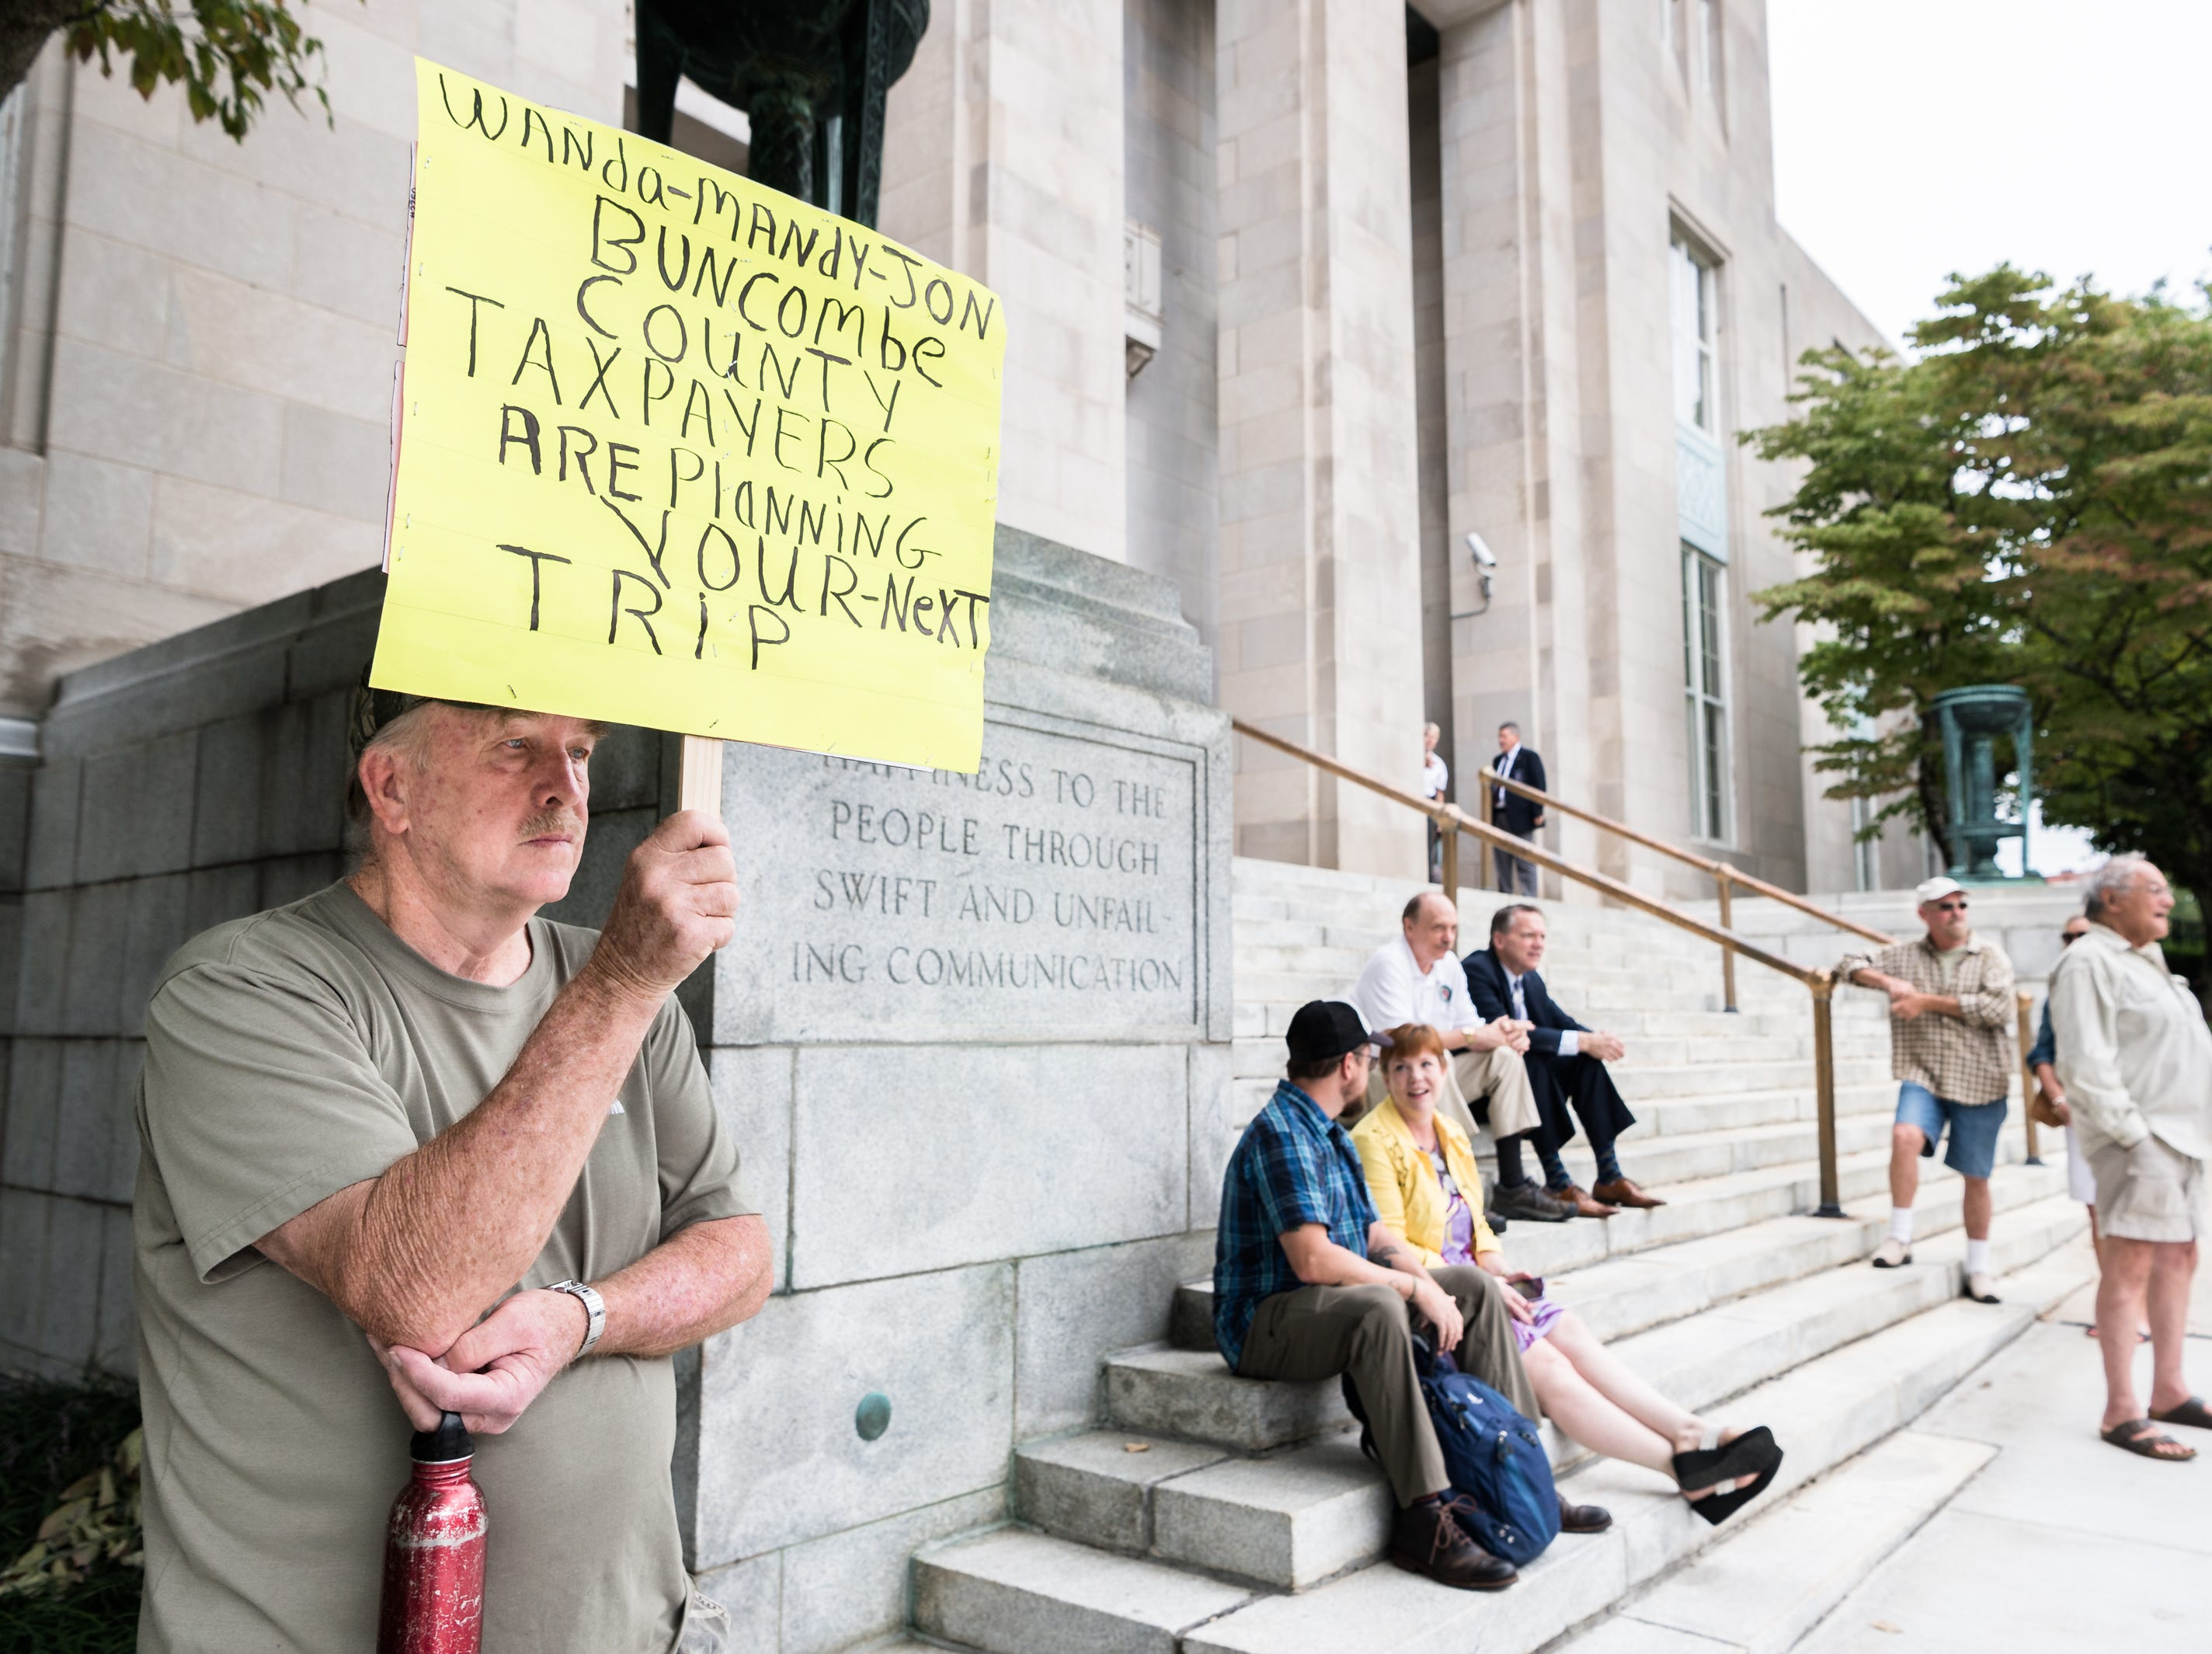 John Payne, local resident, stands outside the federal courthouse Monday, August 20, 2018, waiting for Jon Creighton, Mandy Stone and Wanda Greene, former Buncombe County administrators who have been indicted on 29 counts of wire fraud, one count of conspiracy to defraud the federal government, one count of receipt of bribes and kickbacks,  and one count of federal program fraud. Greene additionally was charged with six counts of tax fraud in connection to a life insurance scheme and embezzlement alleged by prosecutors in previous indictments.